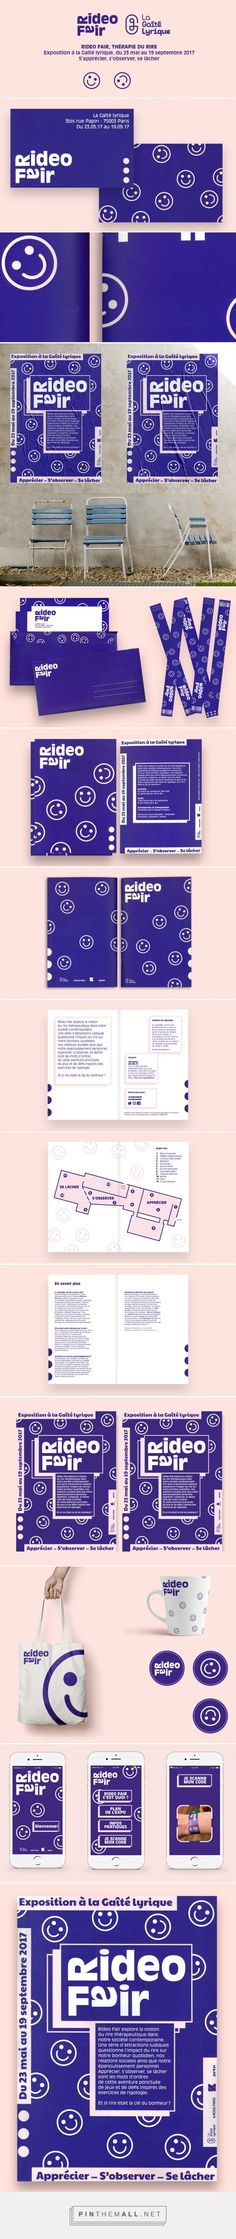 RIDEO FAIR on Behance https://www.behance.net/gallery/54138921/RIDEO-FAIR... - a grouped images picture - Pin Them All